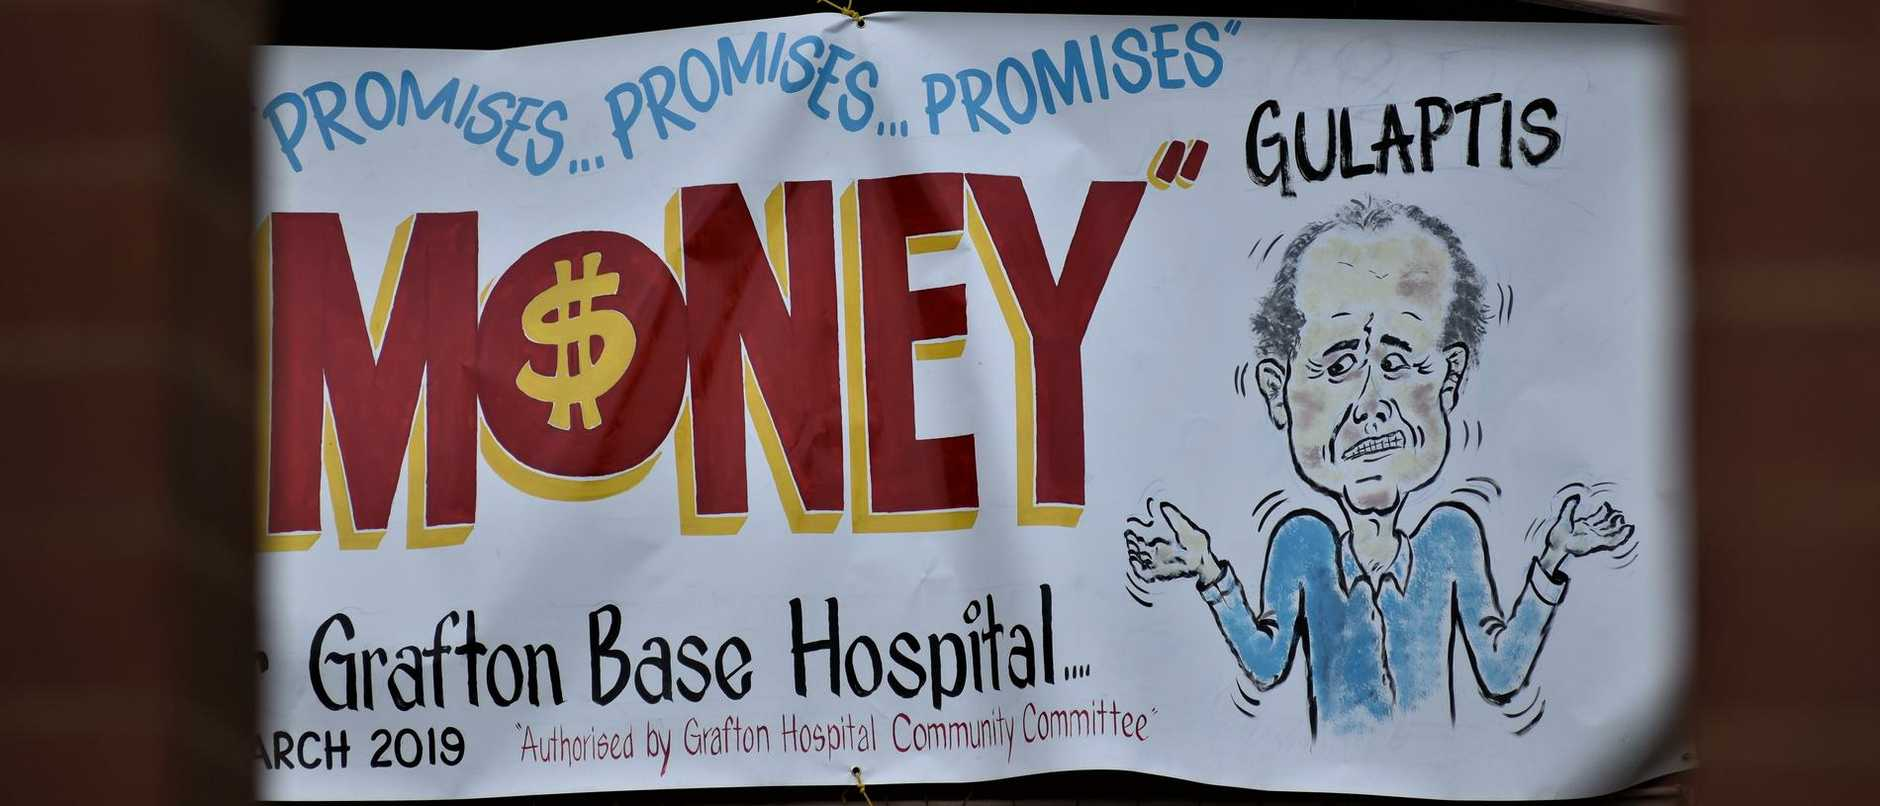 The Grafton Base Hospital Community Committee has erected a large banner in Prince St adjacent to the Clocktower demanding action on Grafton Base Hospital upgrade.